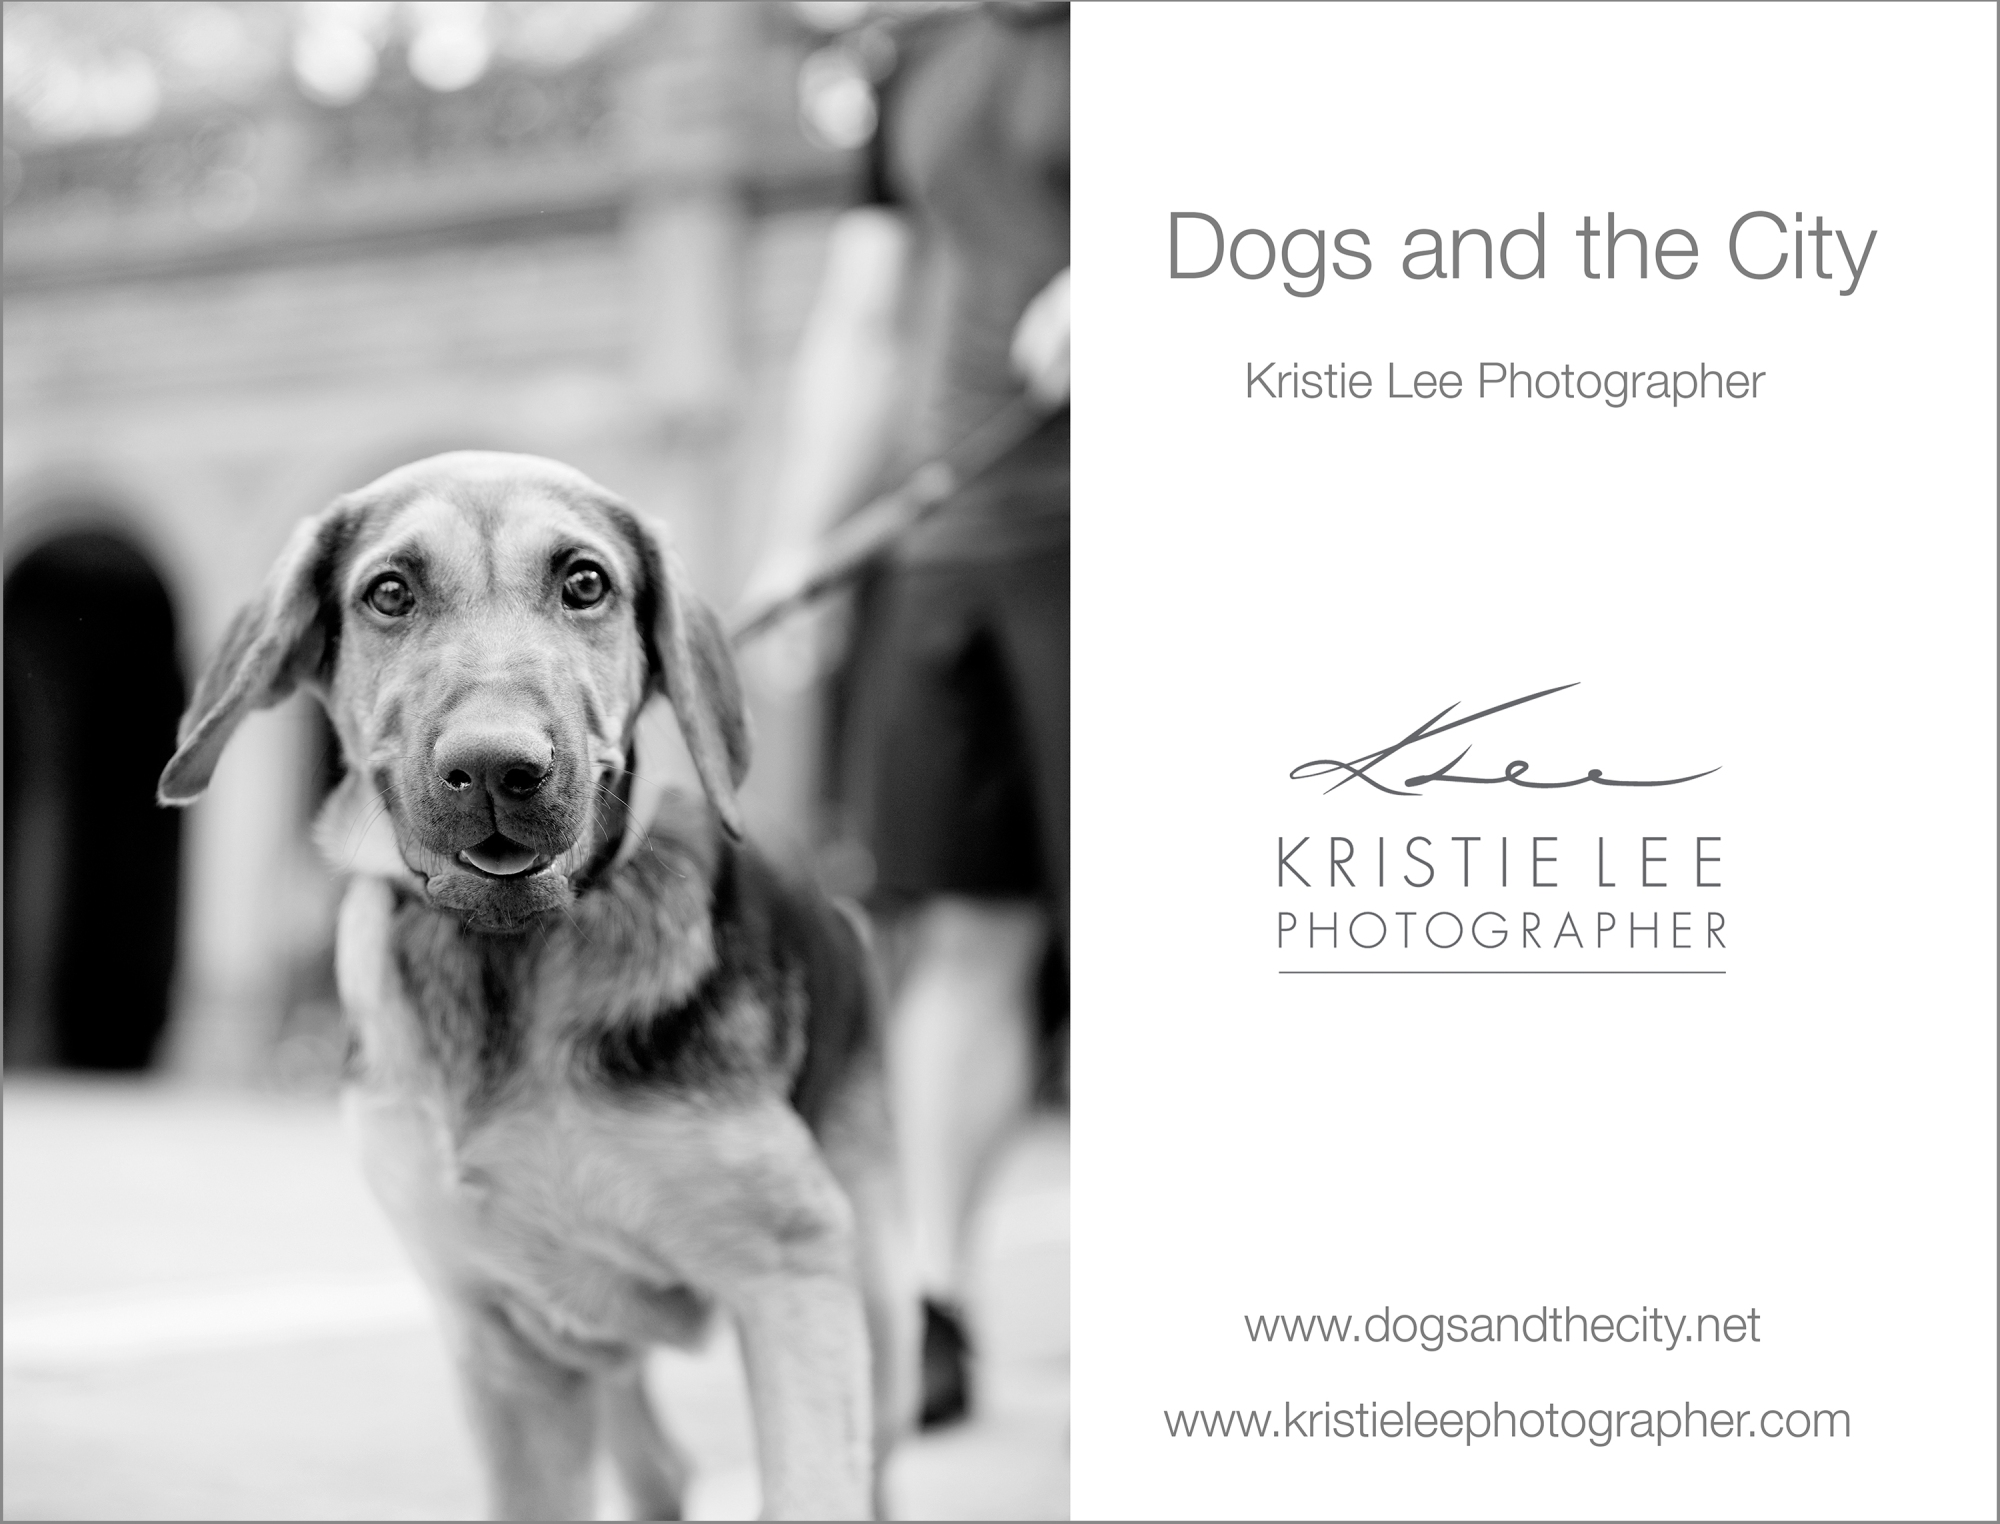 dogs_and_the_city kristie_lee_photographer maverick